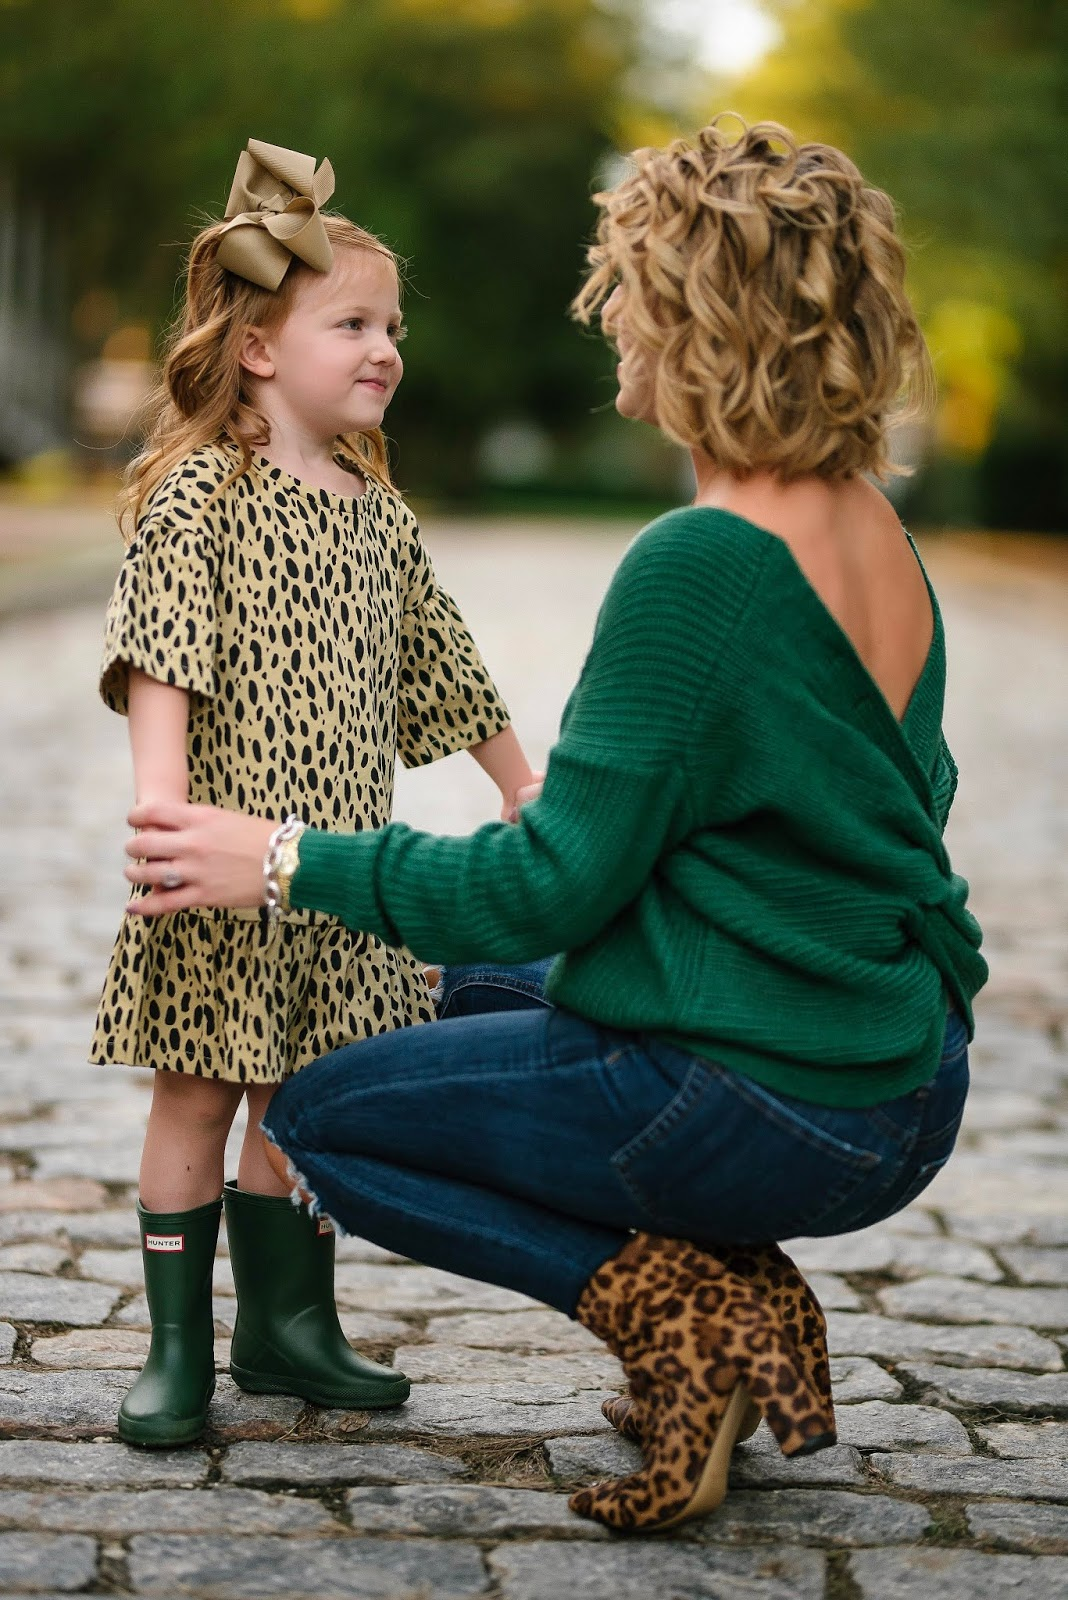 Mommy and me in leopard and green for fall - Something Delightful Blog